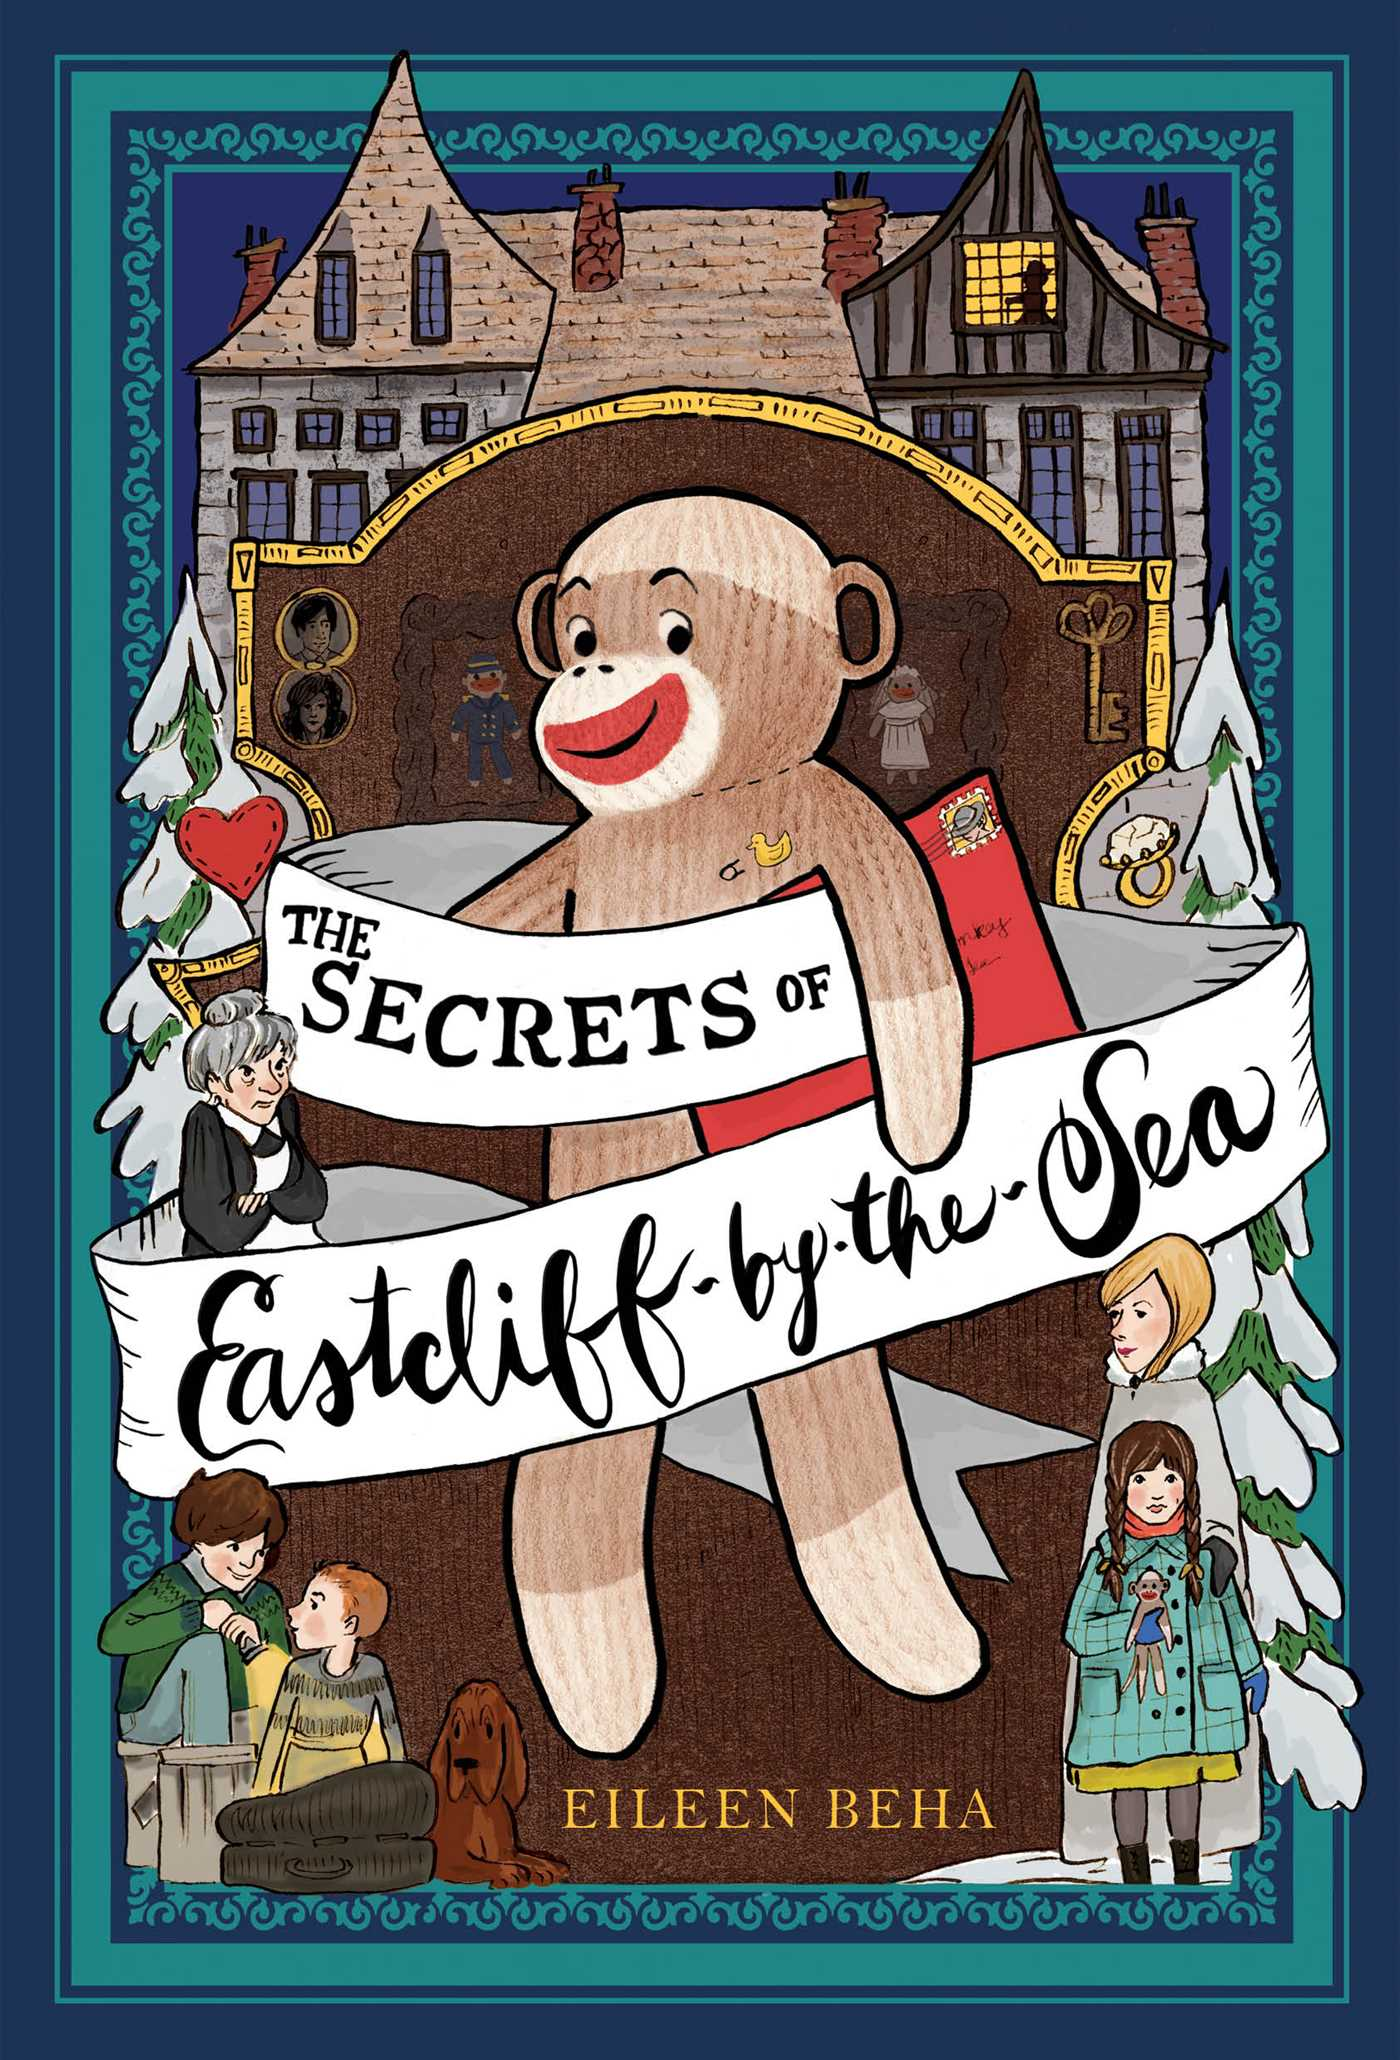 Image result for The Secrets of Eastcliff Book cover